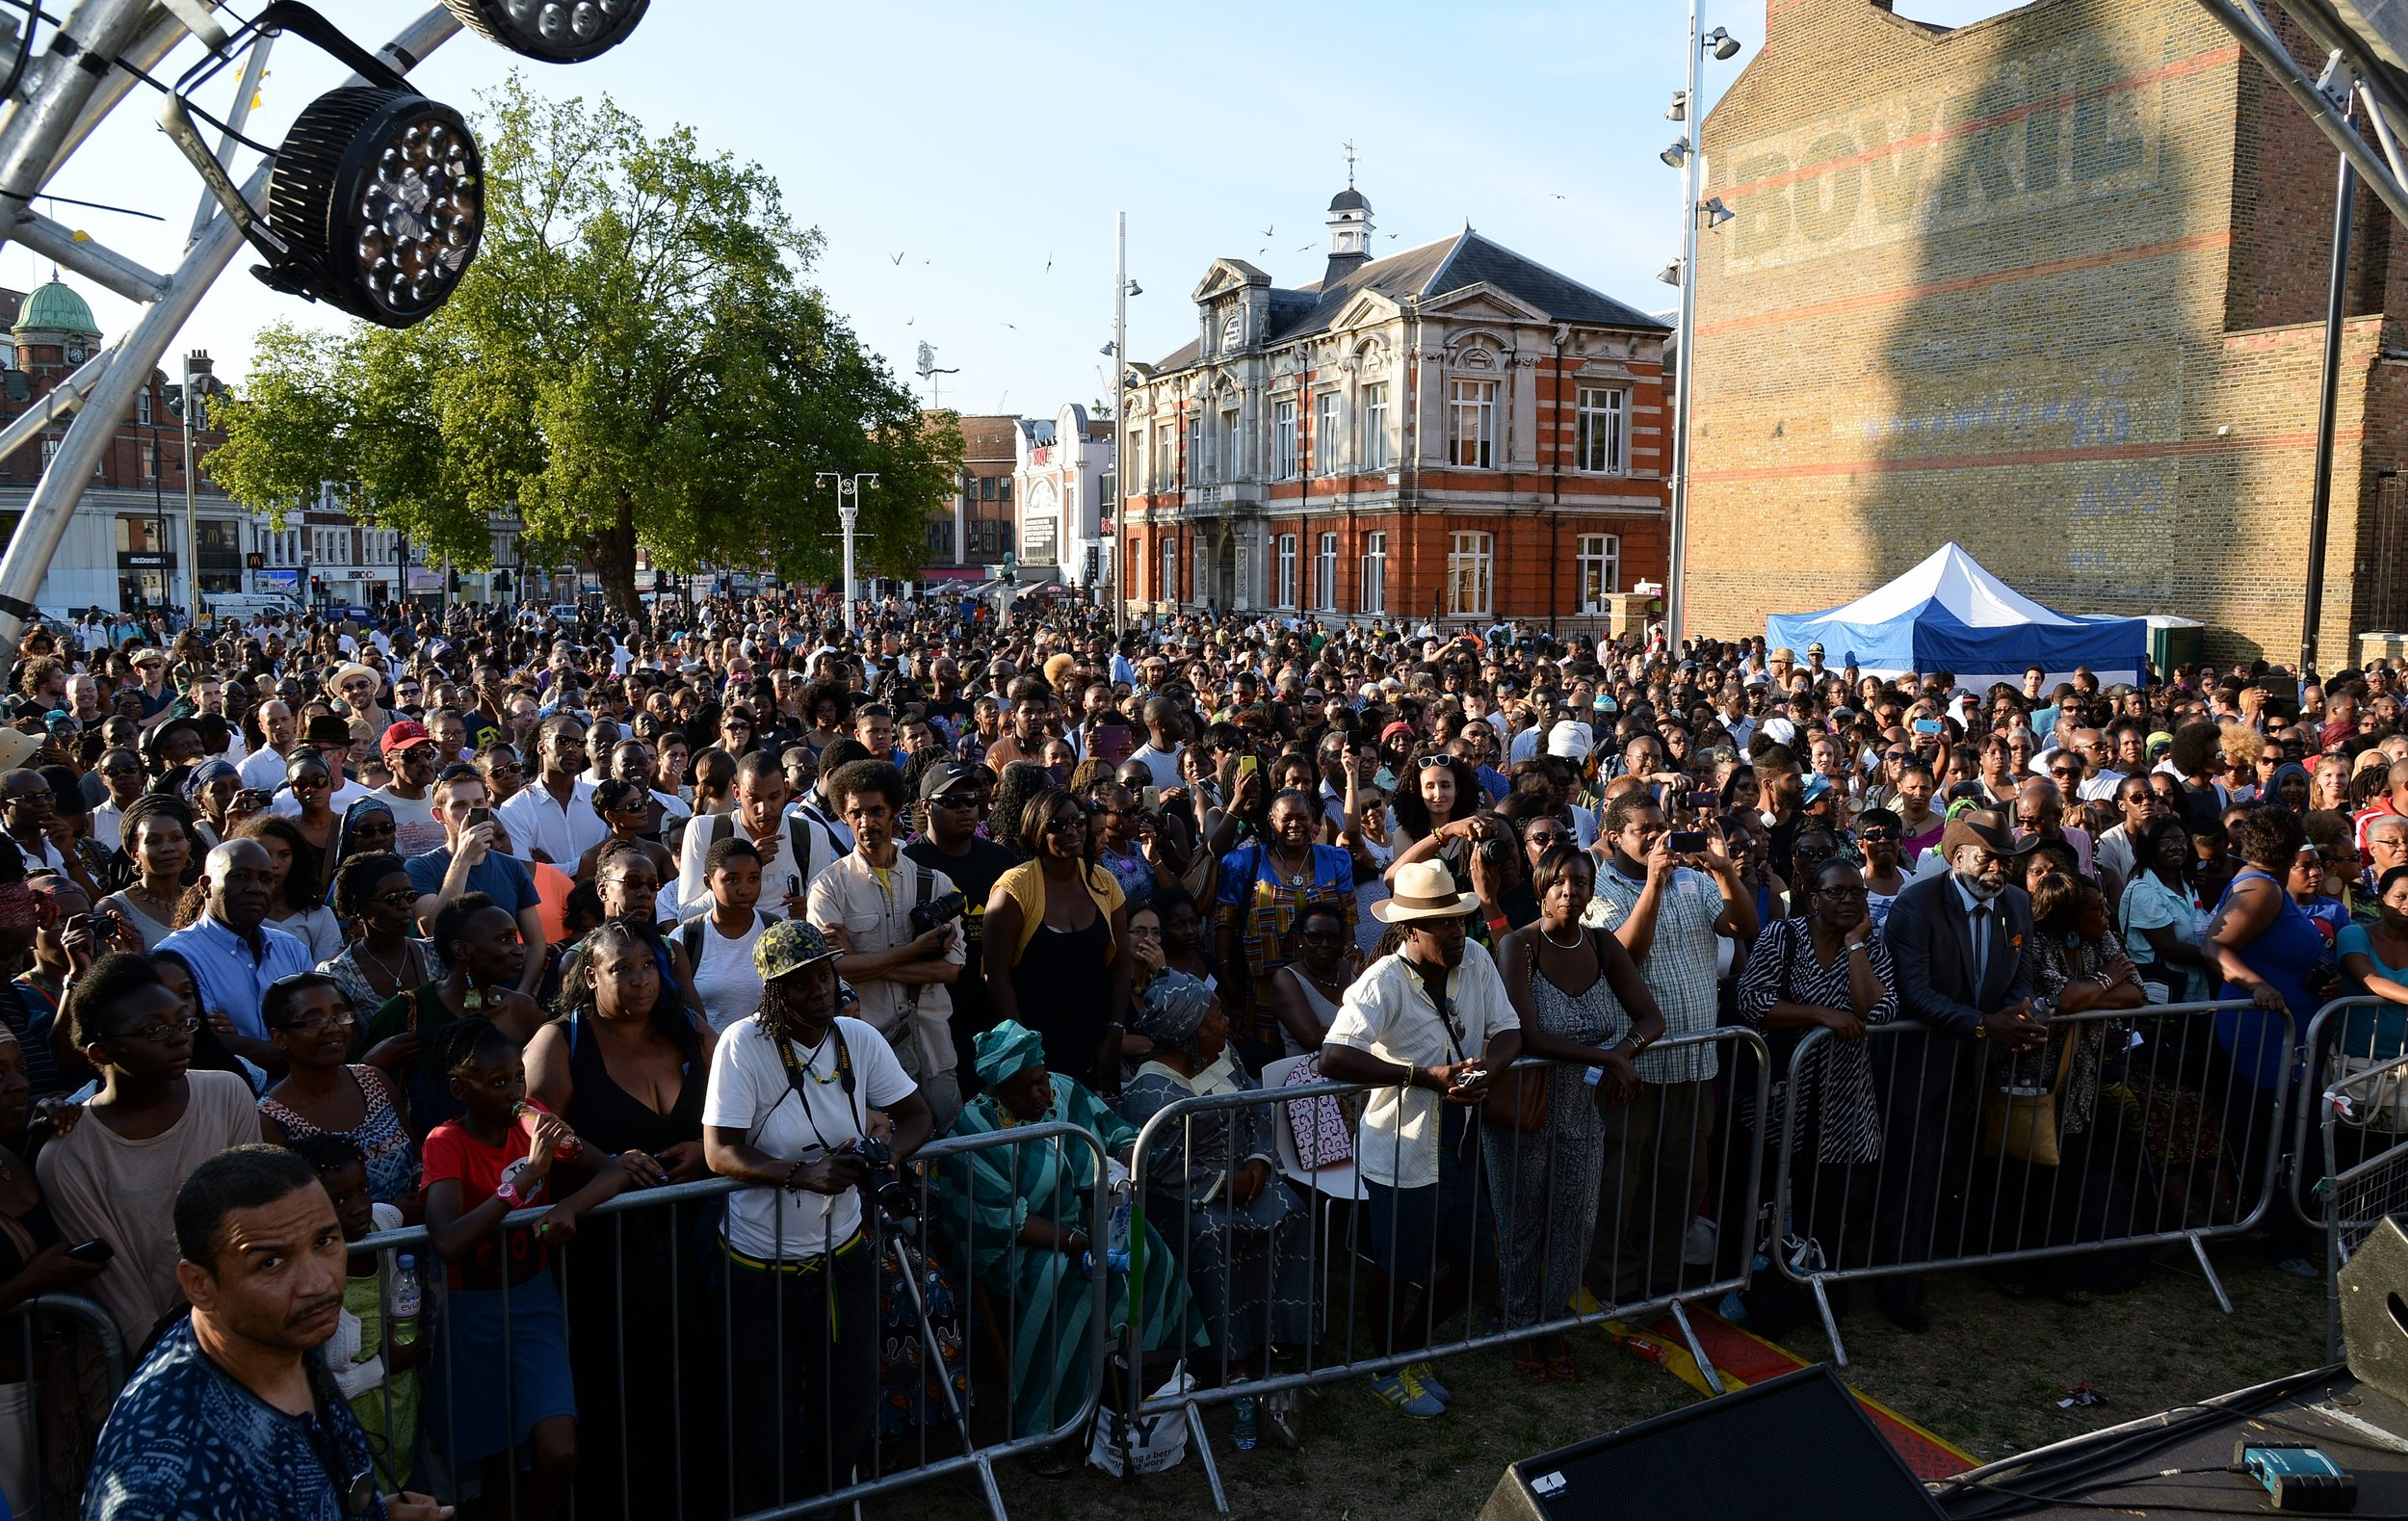 DSC_5382 Windrush Square crowd.jpg